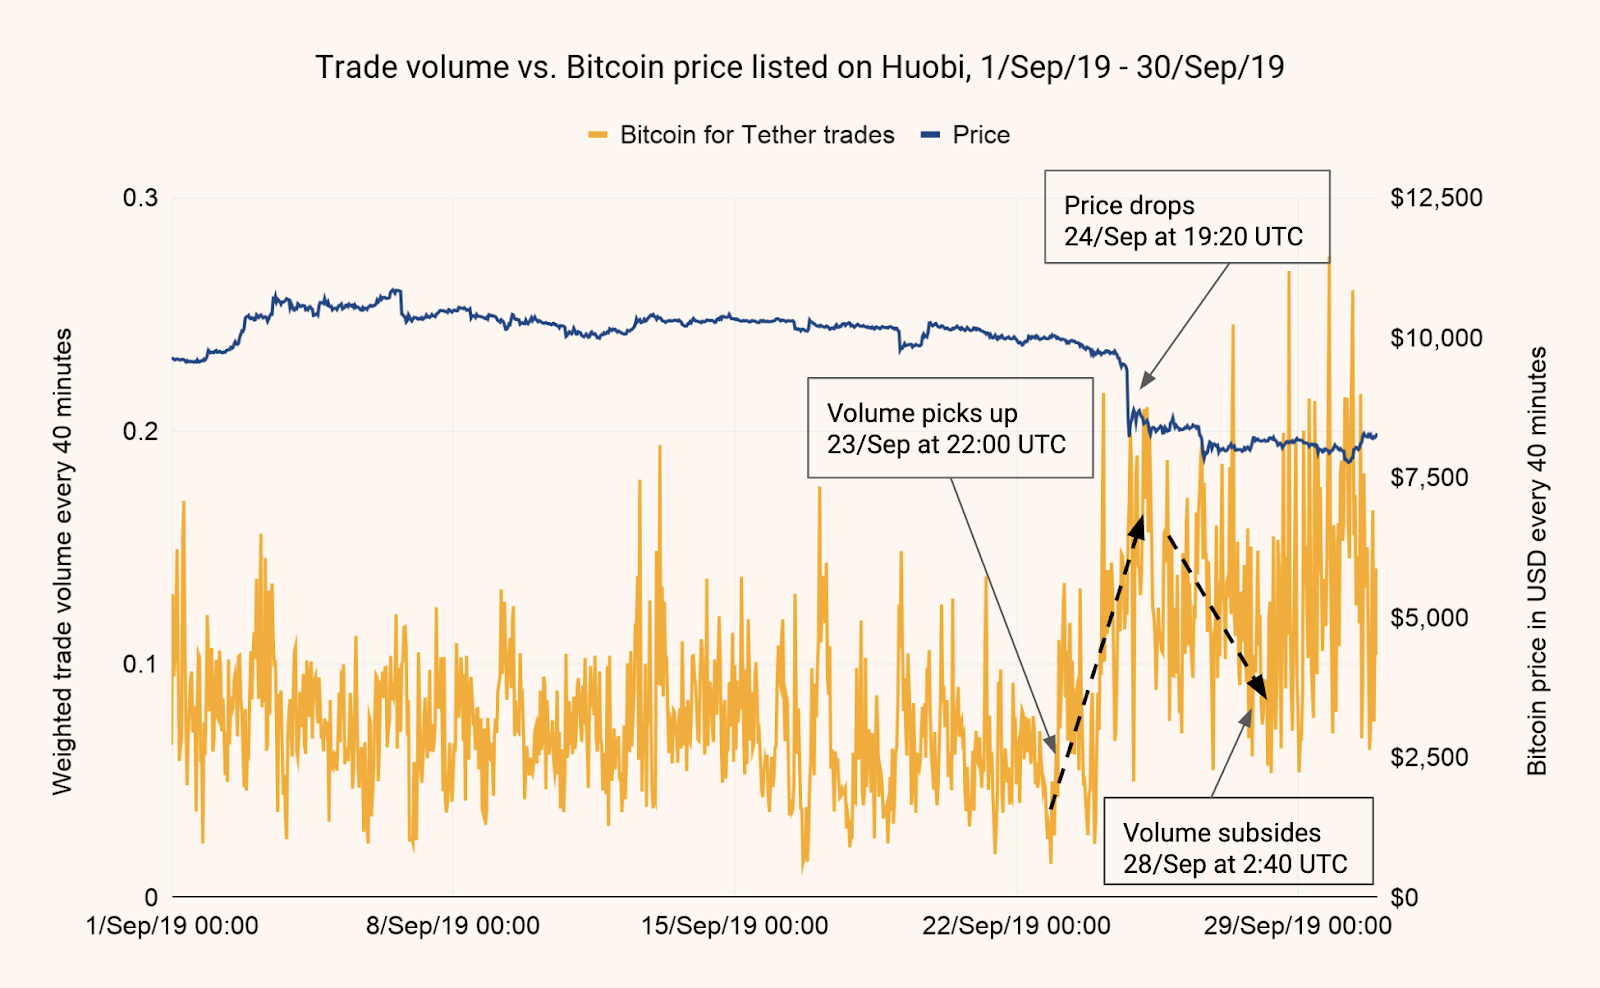 Chainalysis has traced the PlusToken team's attempts to sell ill-gotten bitcoin through Huobi OTC desks, potentially influencing the BTC price.